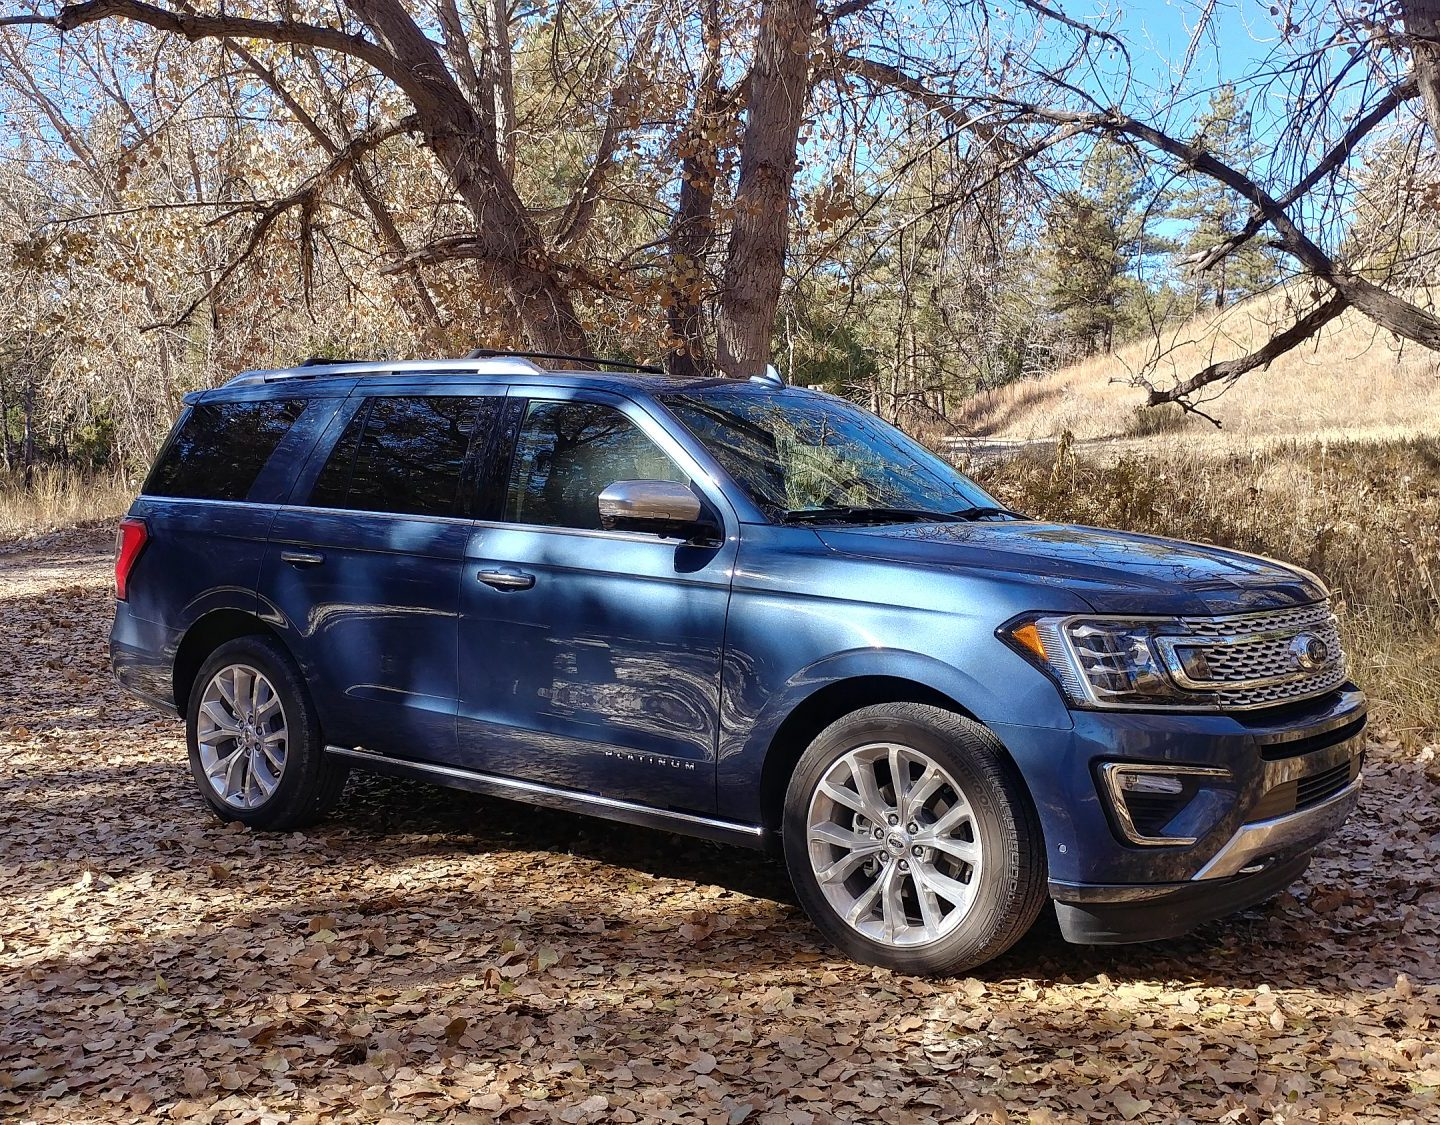 2018 Ford Expedition Melds the Usefulness of An SUV With the Friendliness of a Crossover